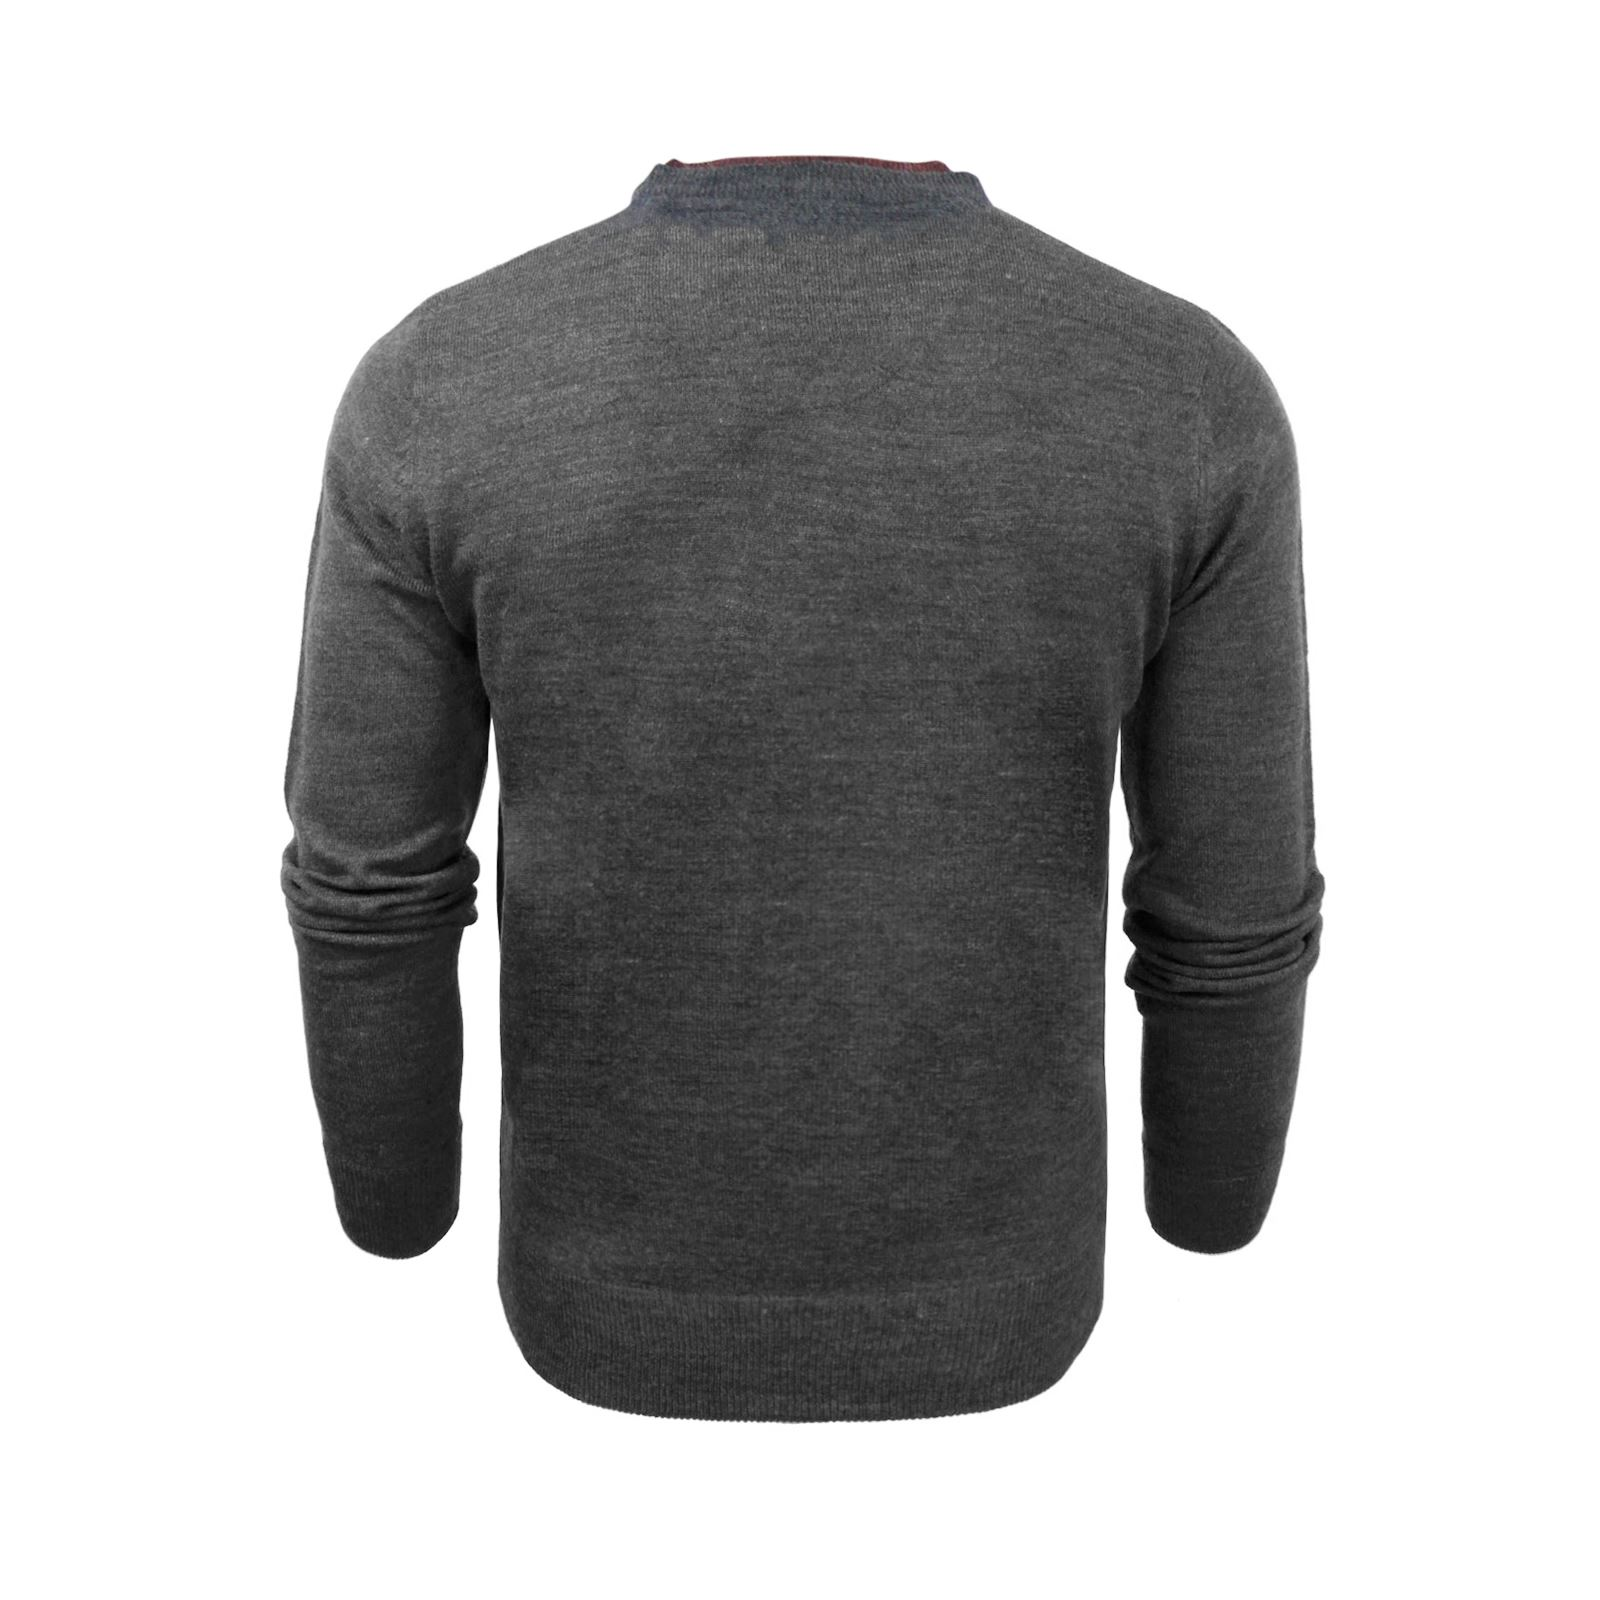 Mens-Jumper-Brave-Soul-Knitted-Sweater-In-Various-Styles thumbnail 3